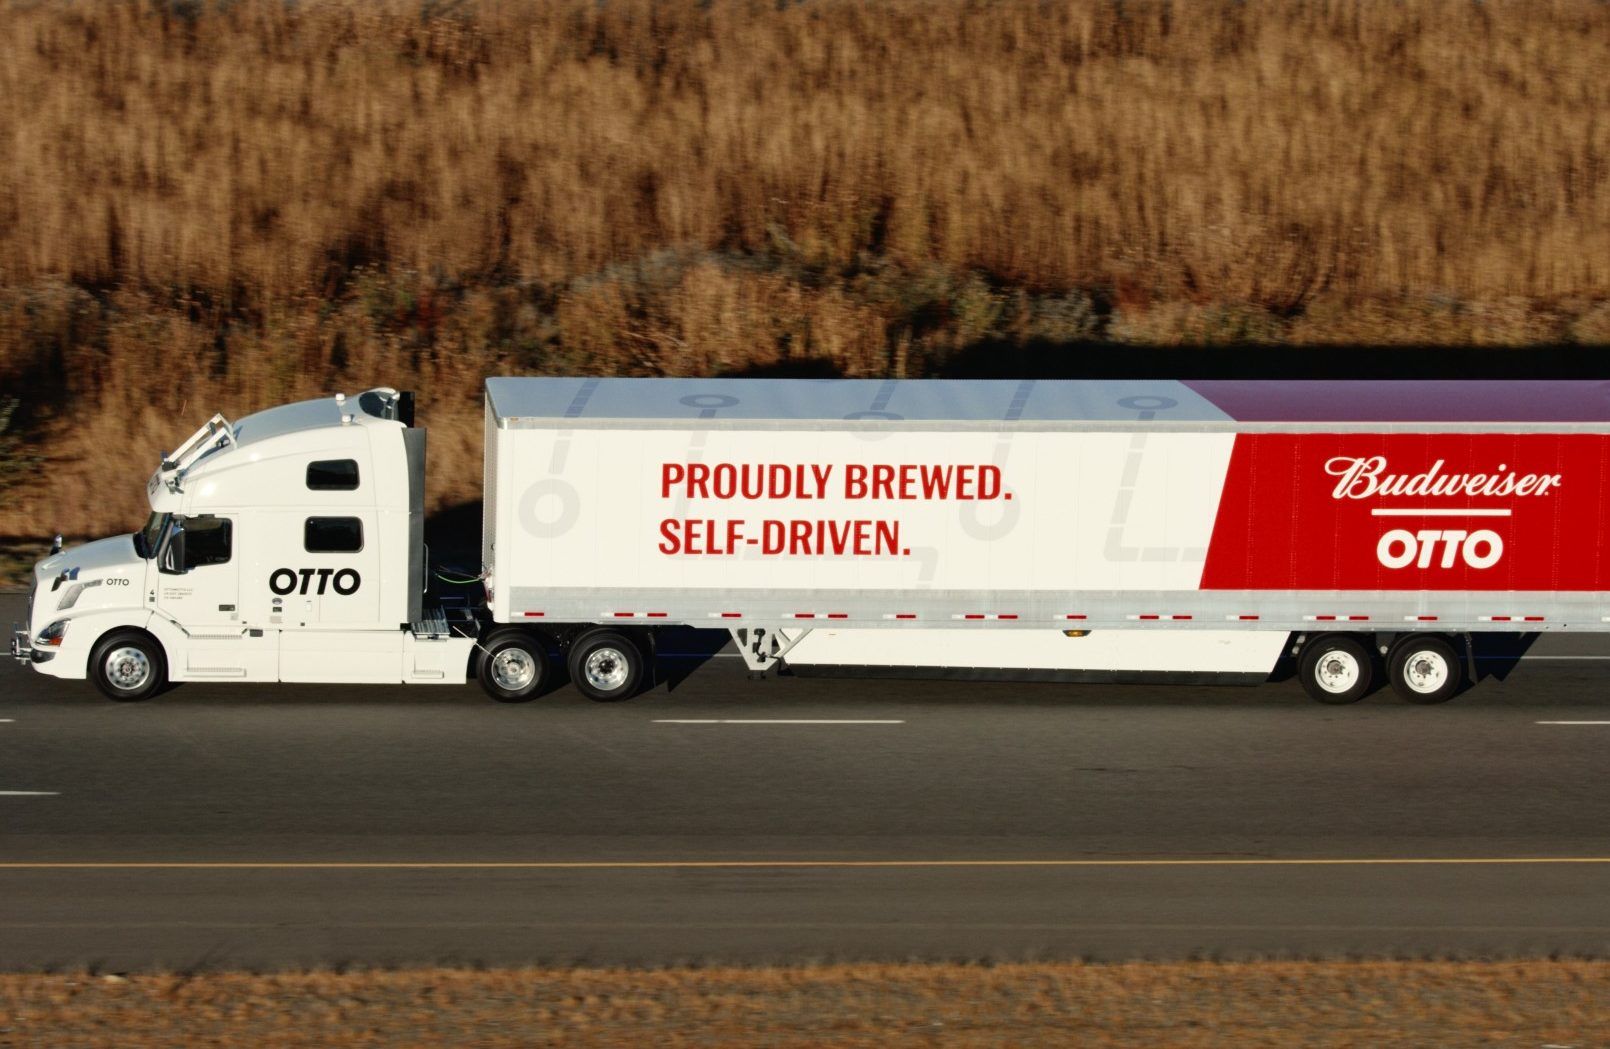 Otto hauls Budweiser in First Commercial Use of Self-Driving Truck